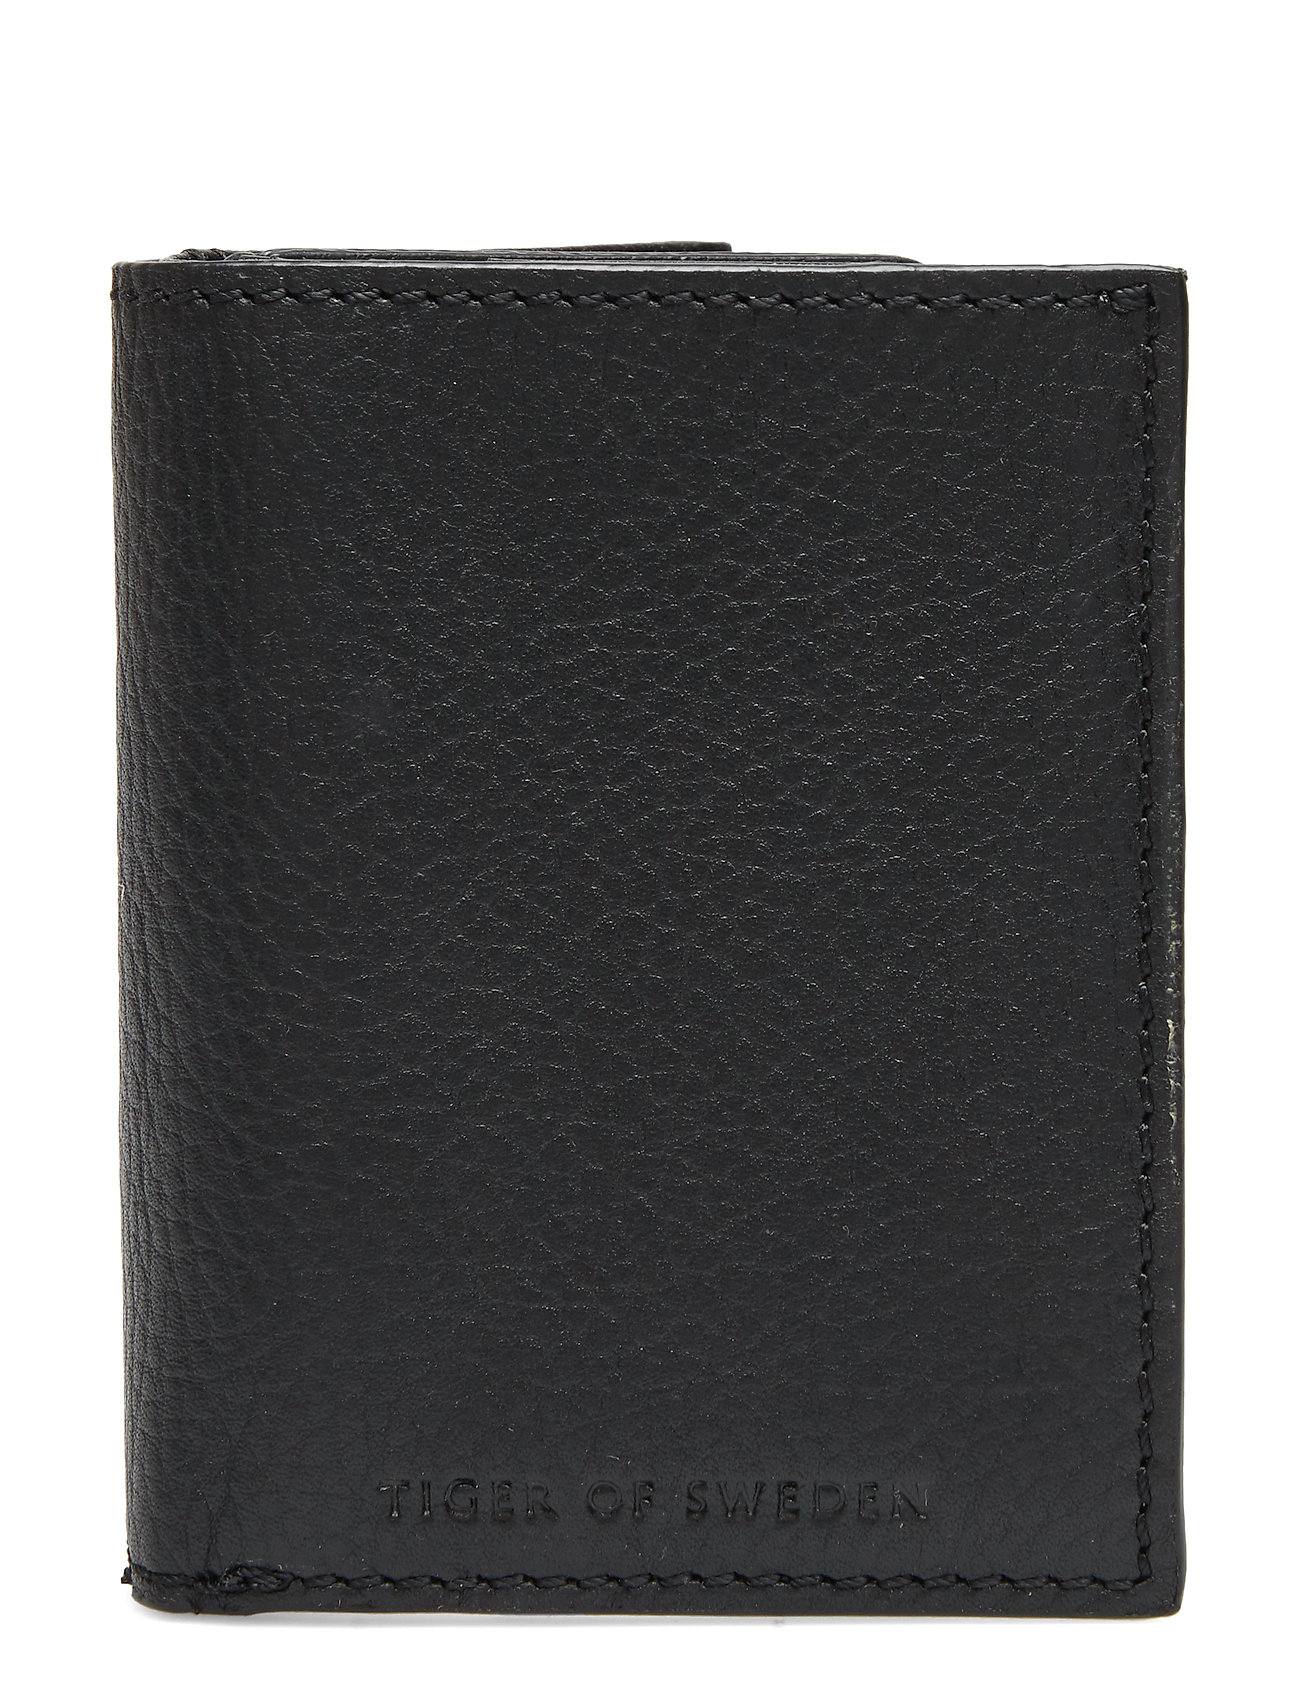 Whitan Accessories Wallets Classic Wallets Sort Tiger Of Sweden